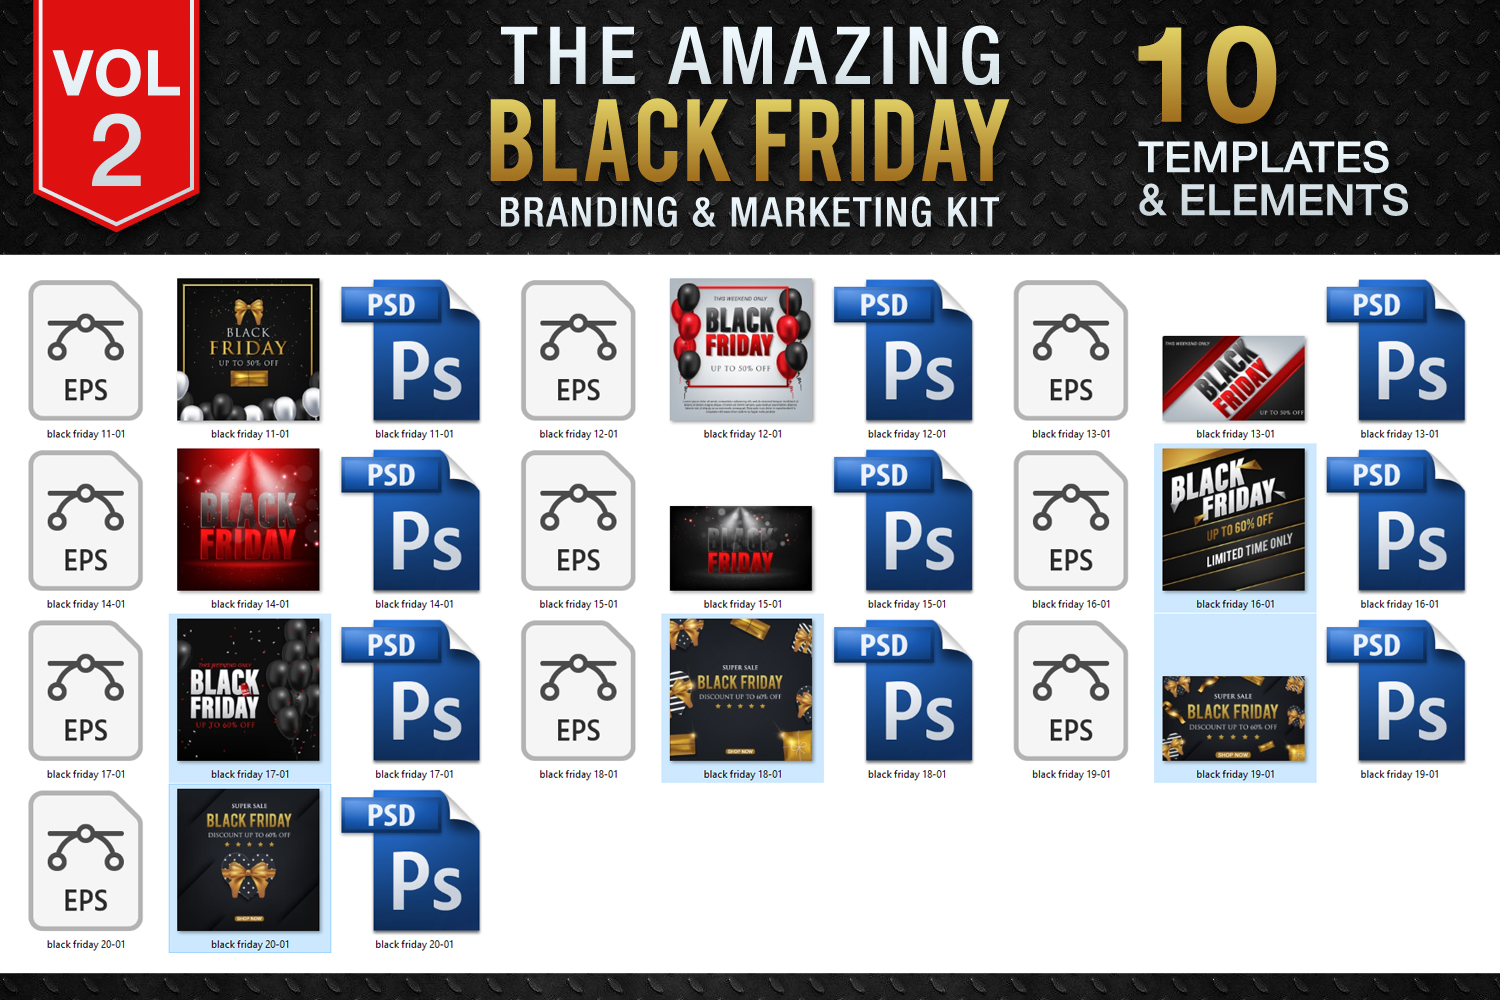 Black Friday Templates Vol 2 example image 4